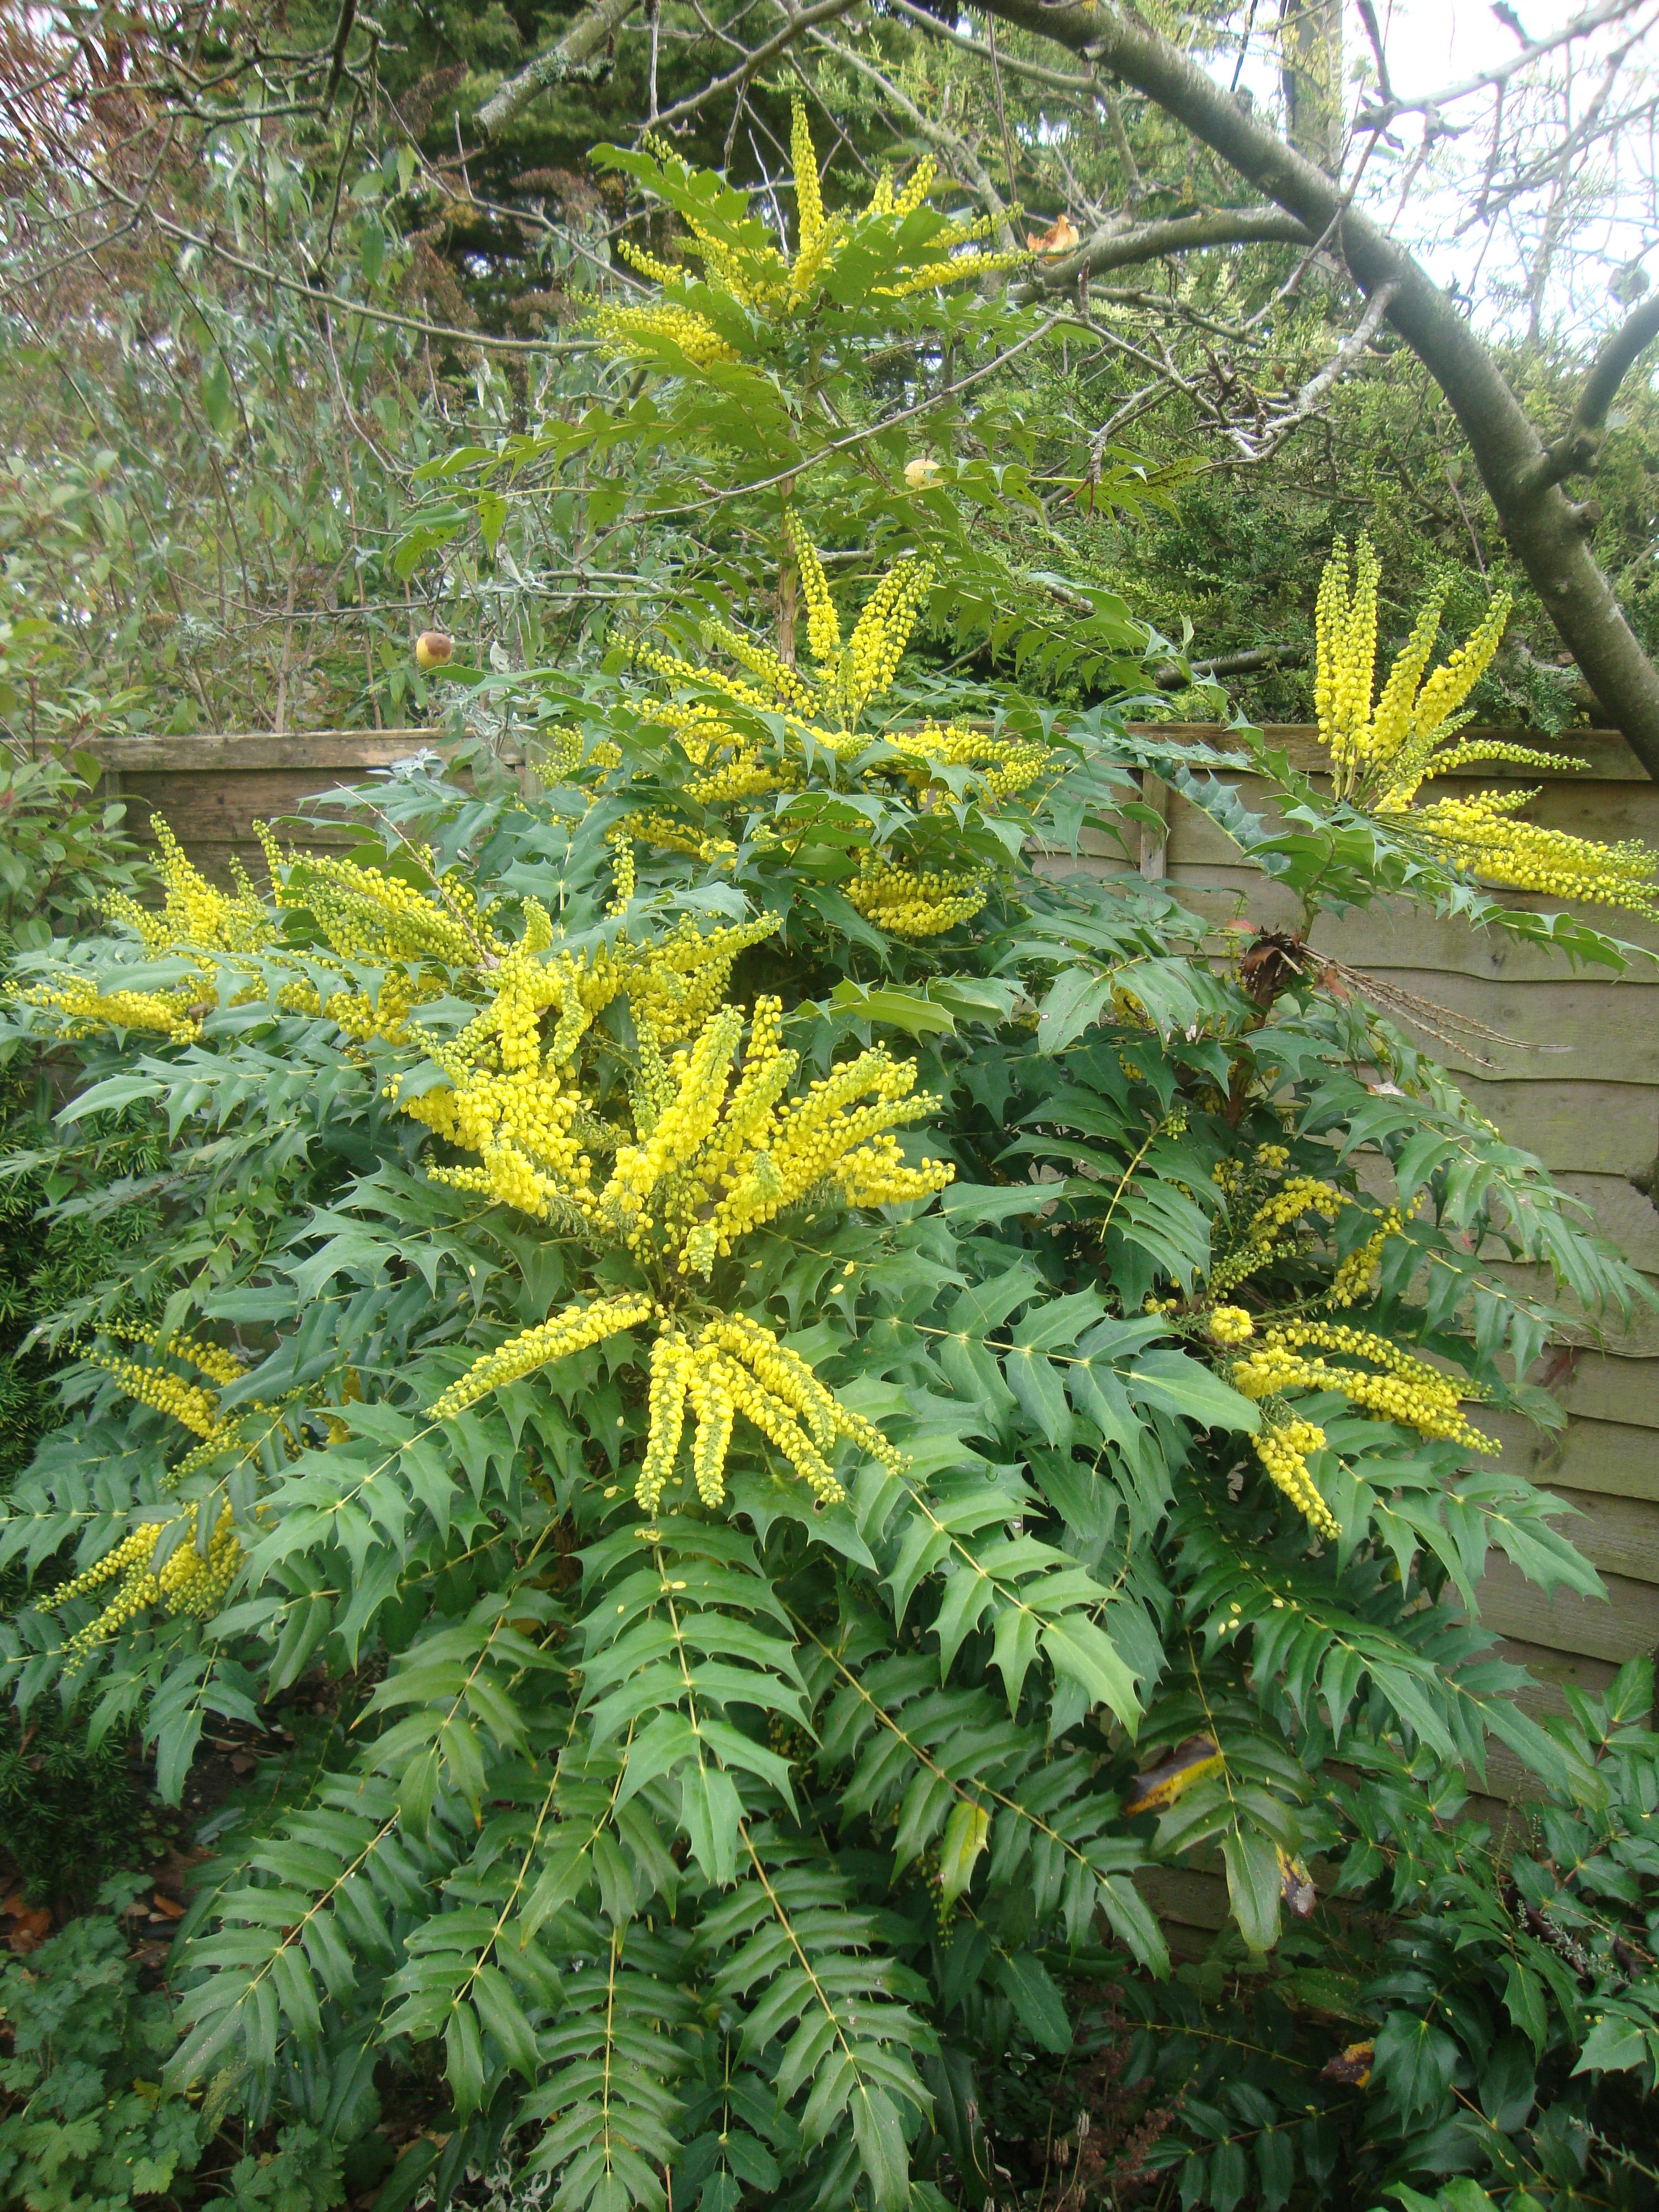 Mahonia japonicallow flowers whose scent is reminiscent of mahonia japonicallow flowers whose scent is reminiscent of lily of the valley winter flowering which lasts for many weeks these shrubs are dhlflorist Gallery